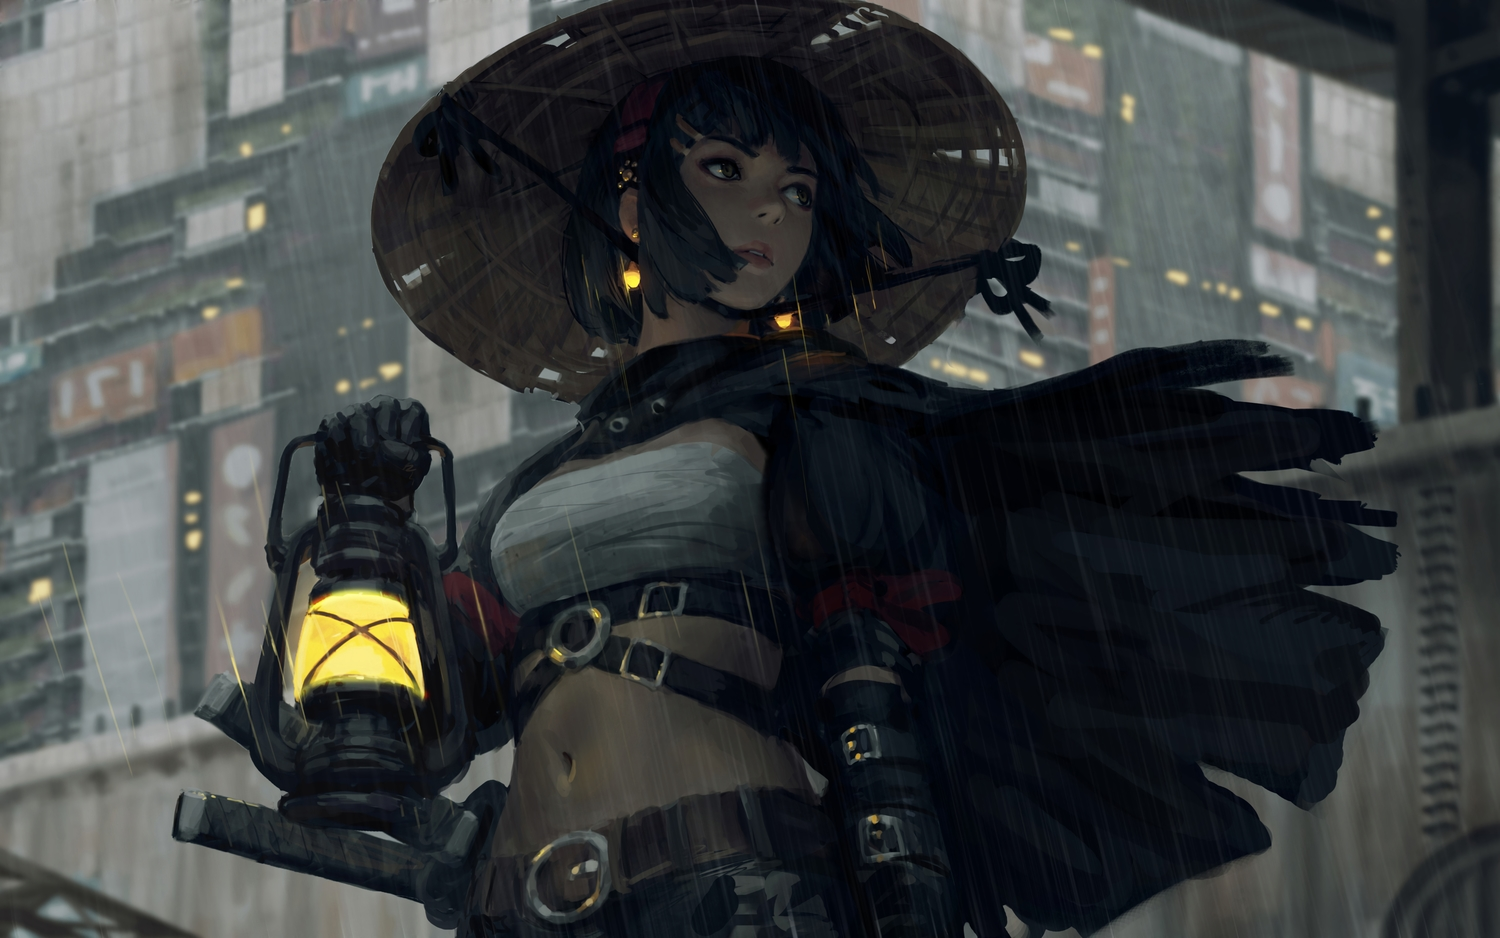 guweiz hat navel original rain sarashi short_hair underwear water